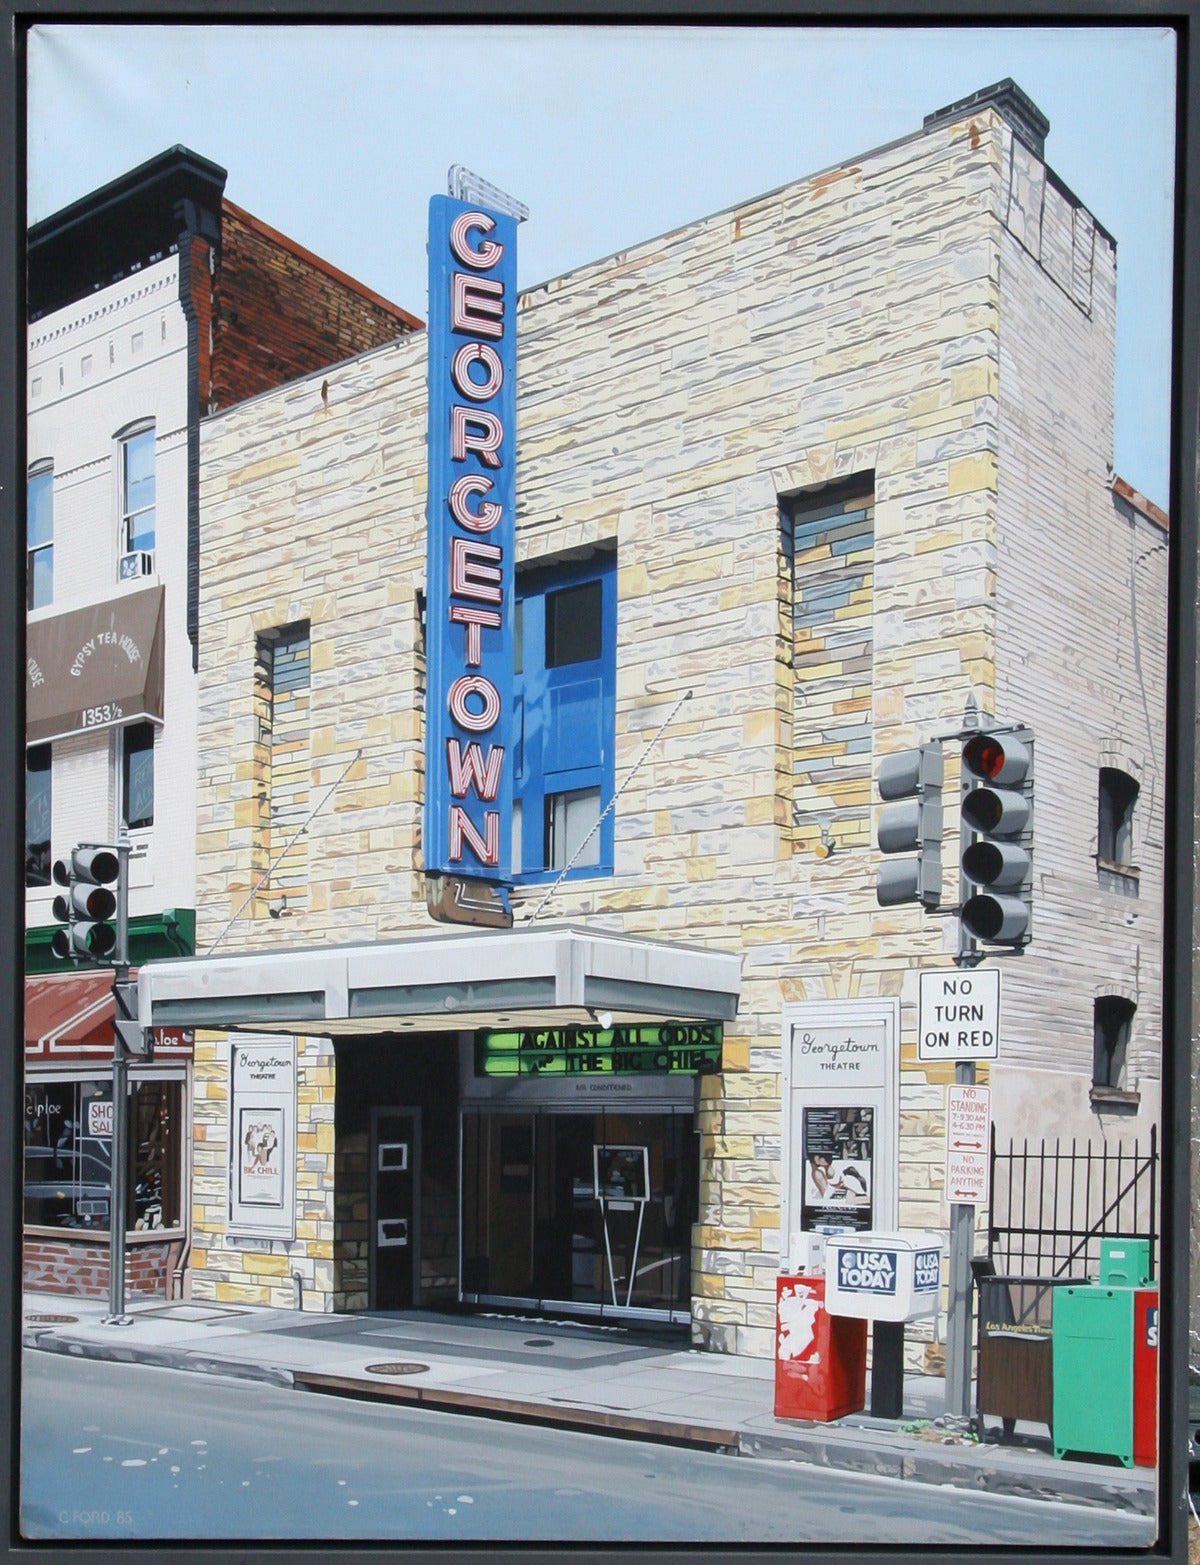 Charles ford georgetown movie theatre painting at 1stdibs for Georgetown movie theater